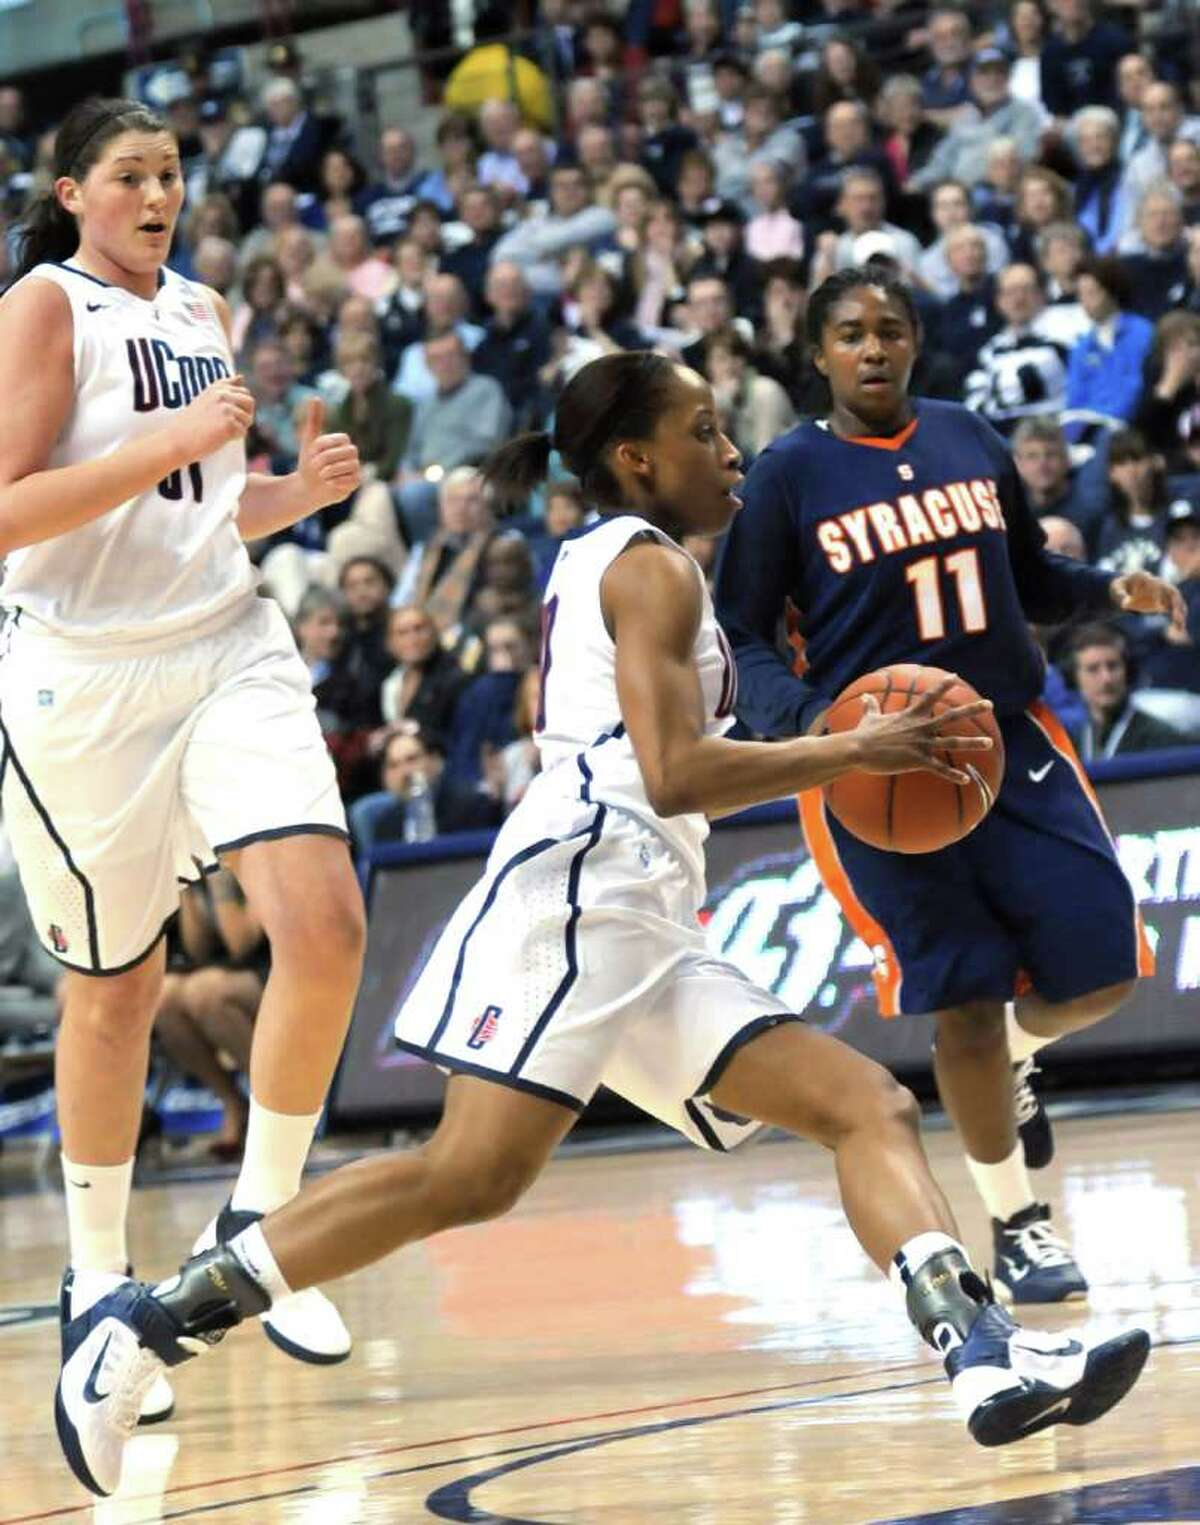 Connecticut's Lorin Dixon sprints for the basket in front of Syracuse's Tasha Harris, right, and Connecticut's Stefanie Dolson during the first half of an NCAA college basketball game in Storrs, Conn., Monday, Feb. 28, 2011. (AP Photo/Bob Child)